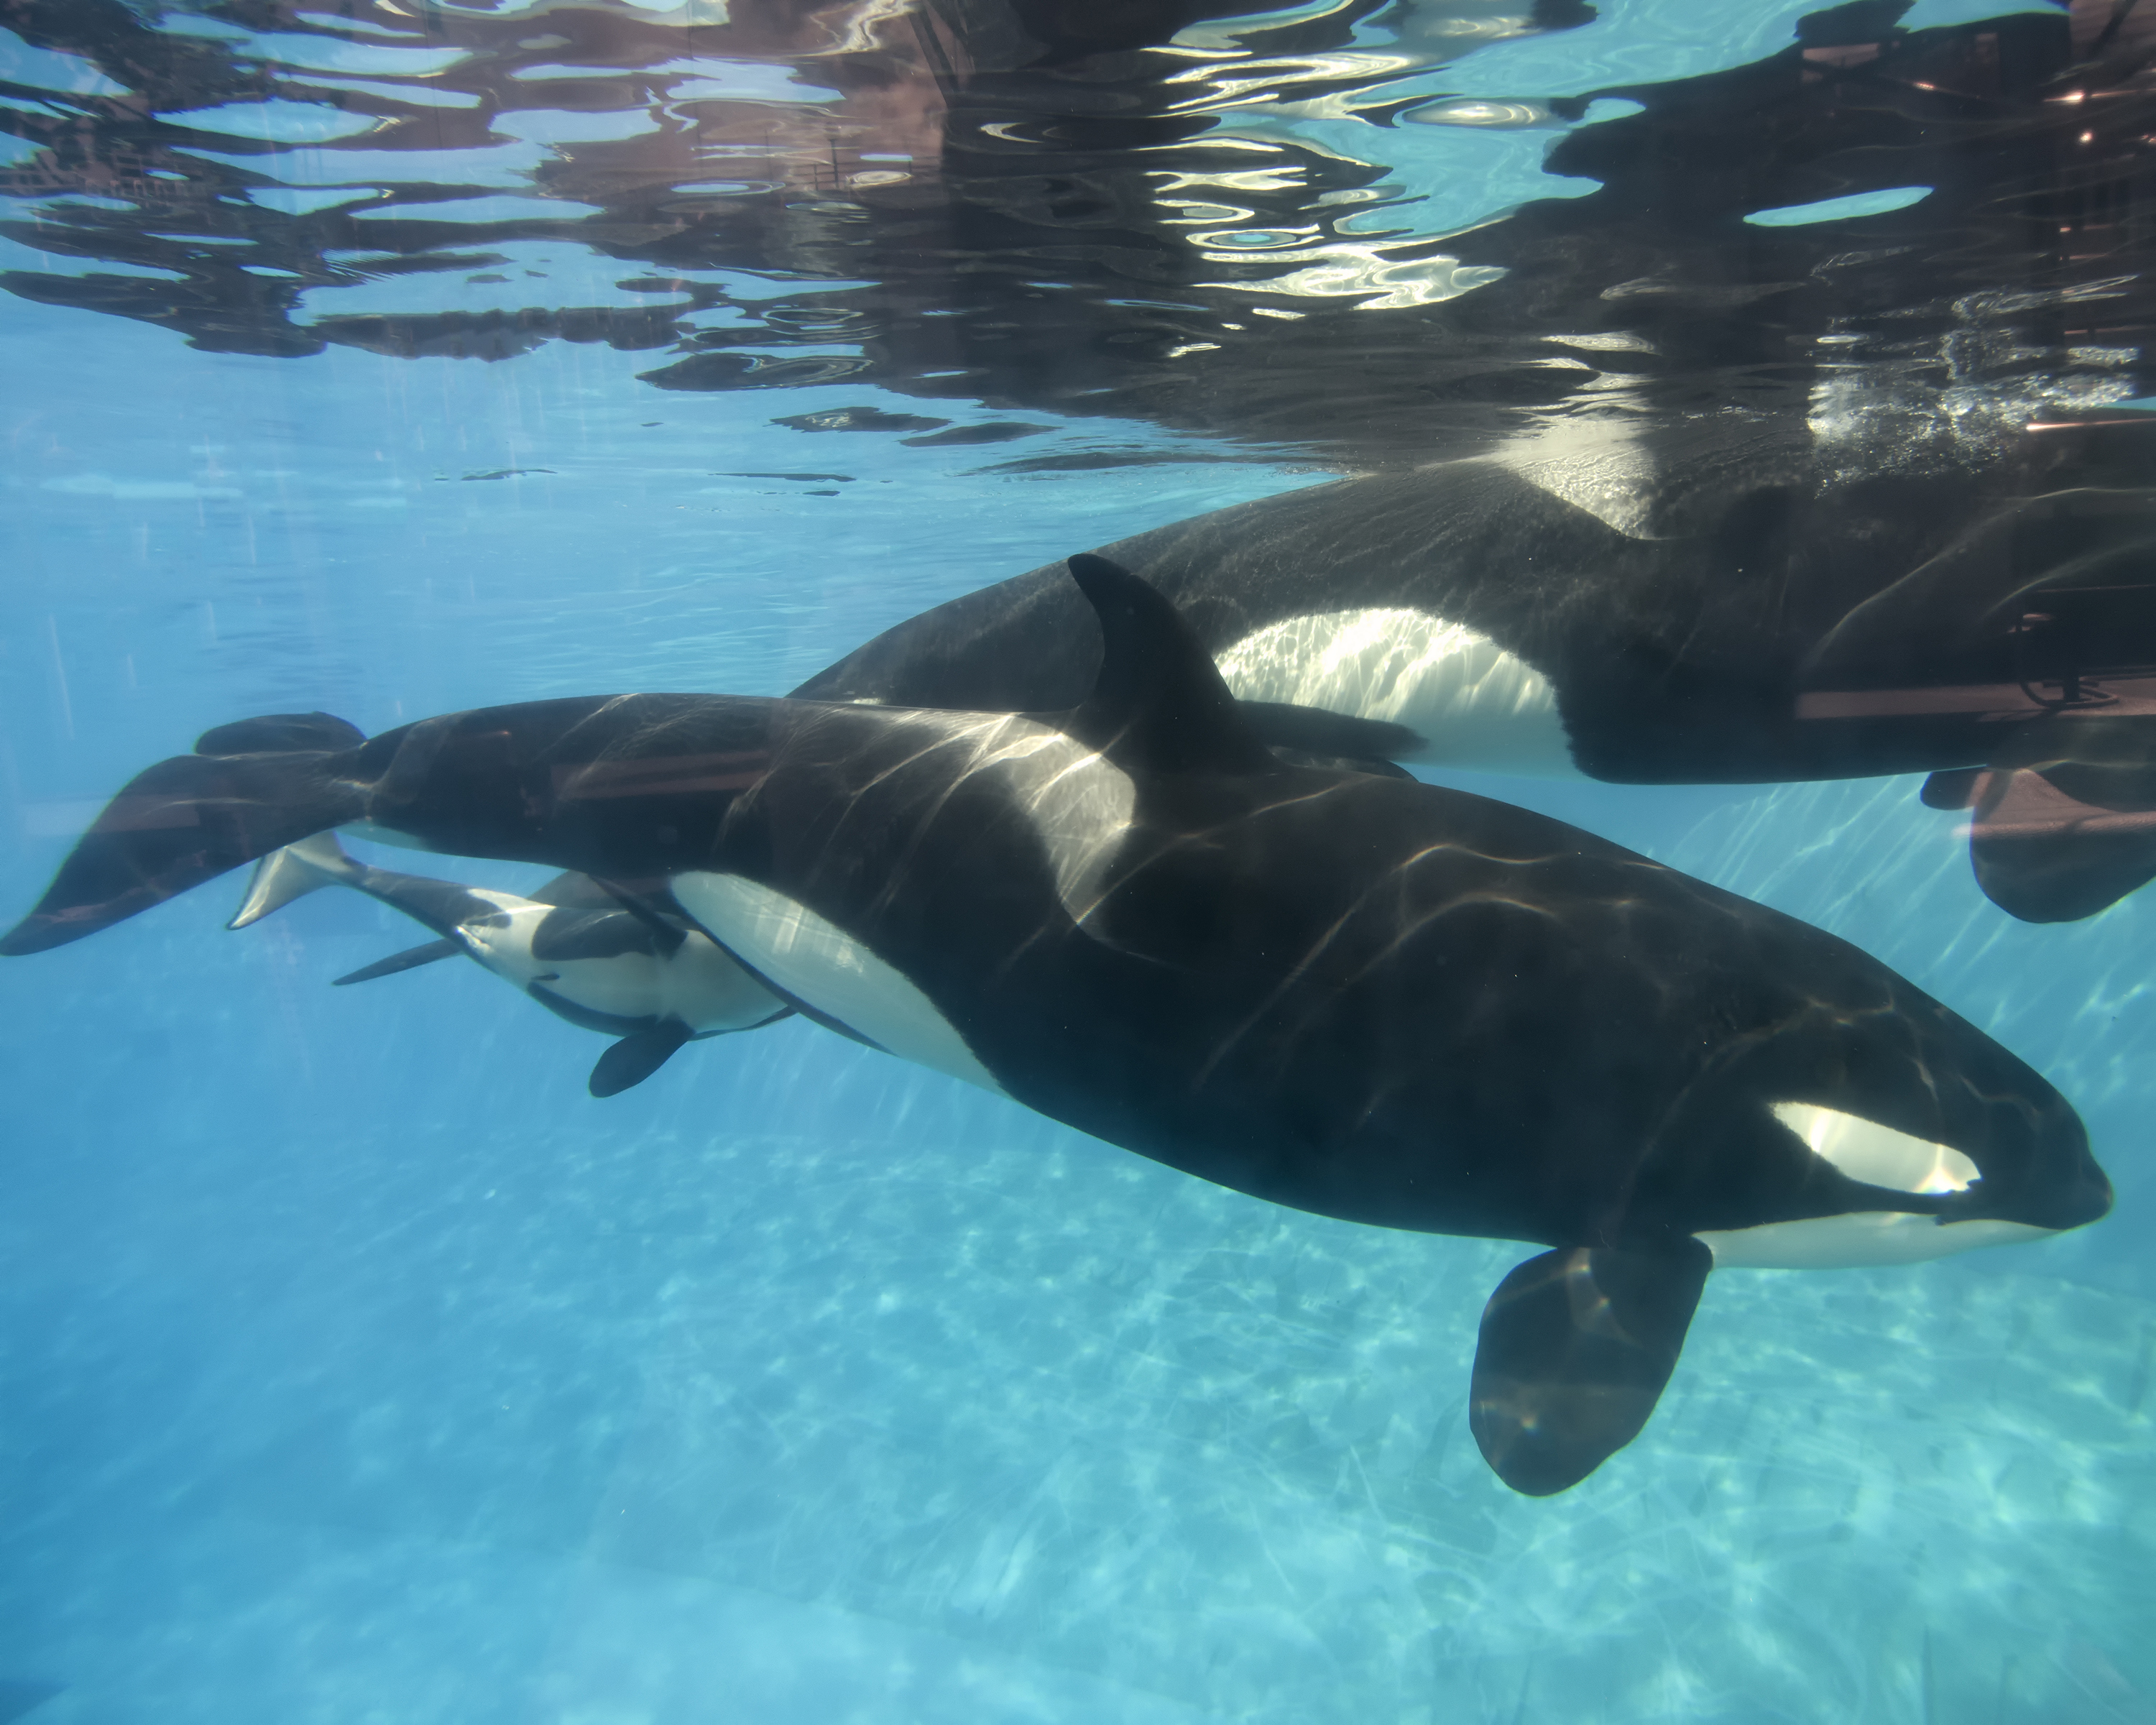 In this handout photo provided by SeaWorld San Diego, a baby killer whale calf nurses from its mother, Kalia, at SeaWorld San Diego's Shamu Stadium December 4, 2014 in San Diego, California.